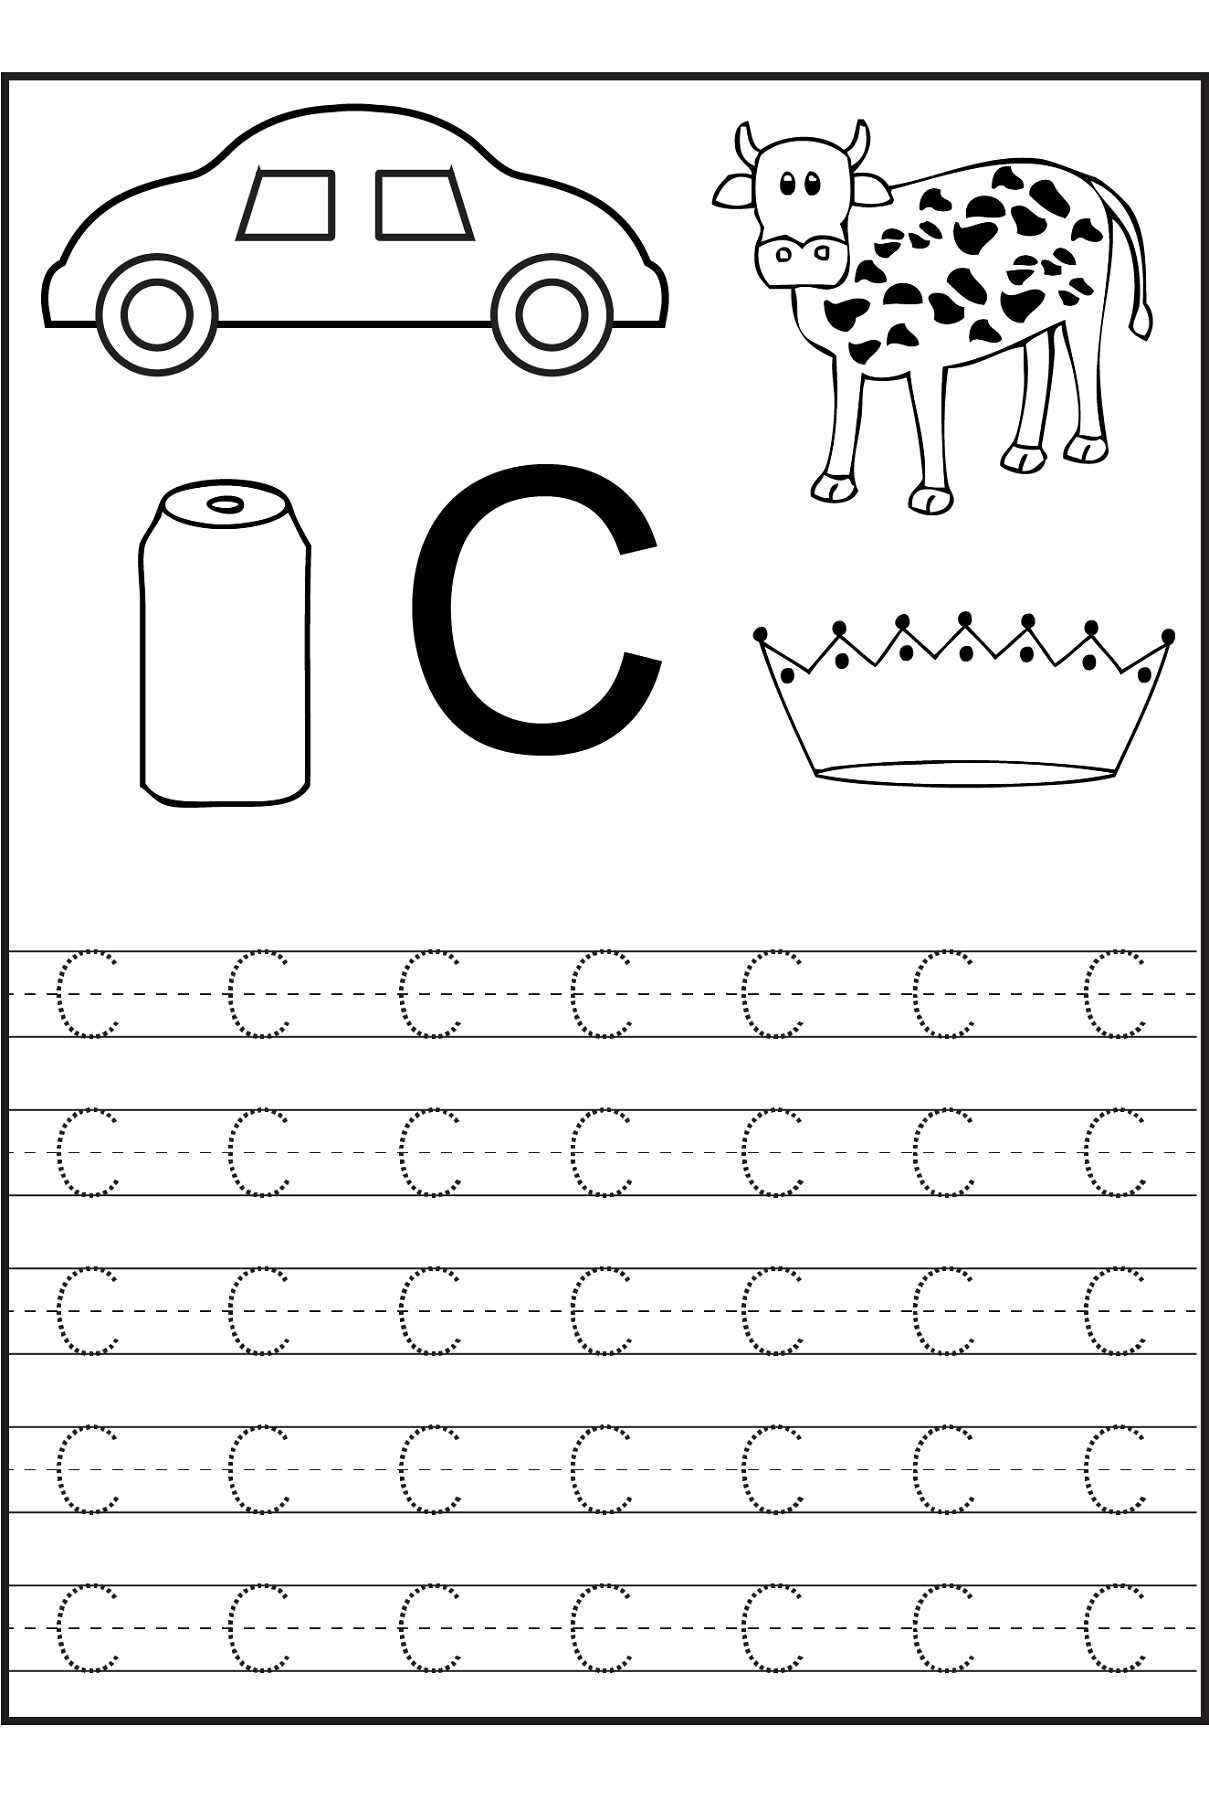 Letter C Worksheets For Preschool